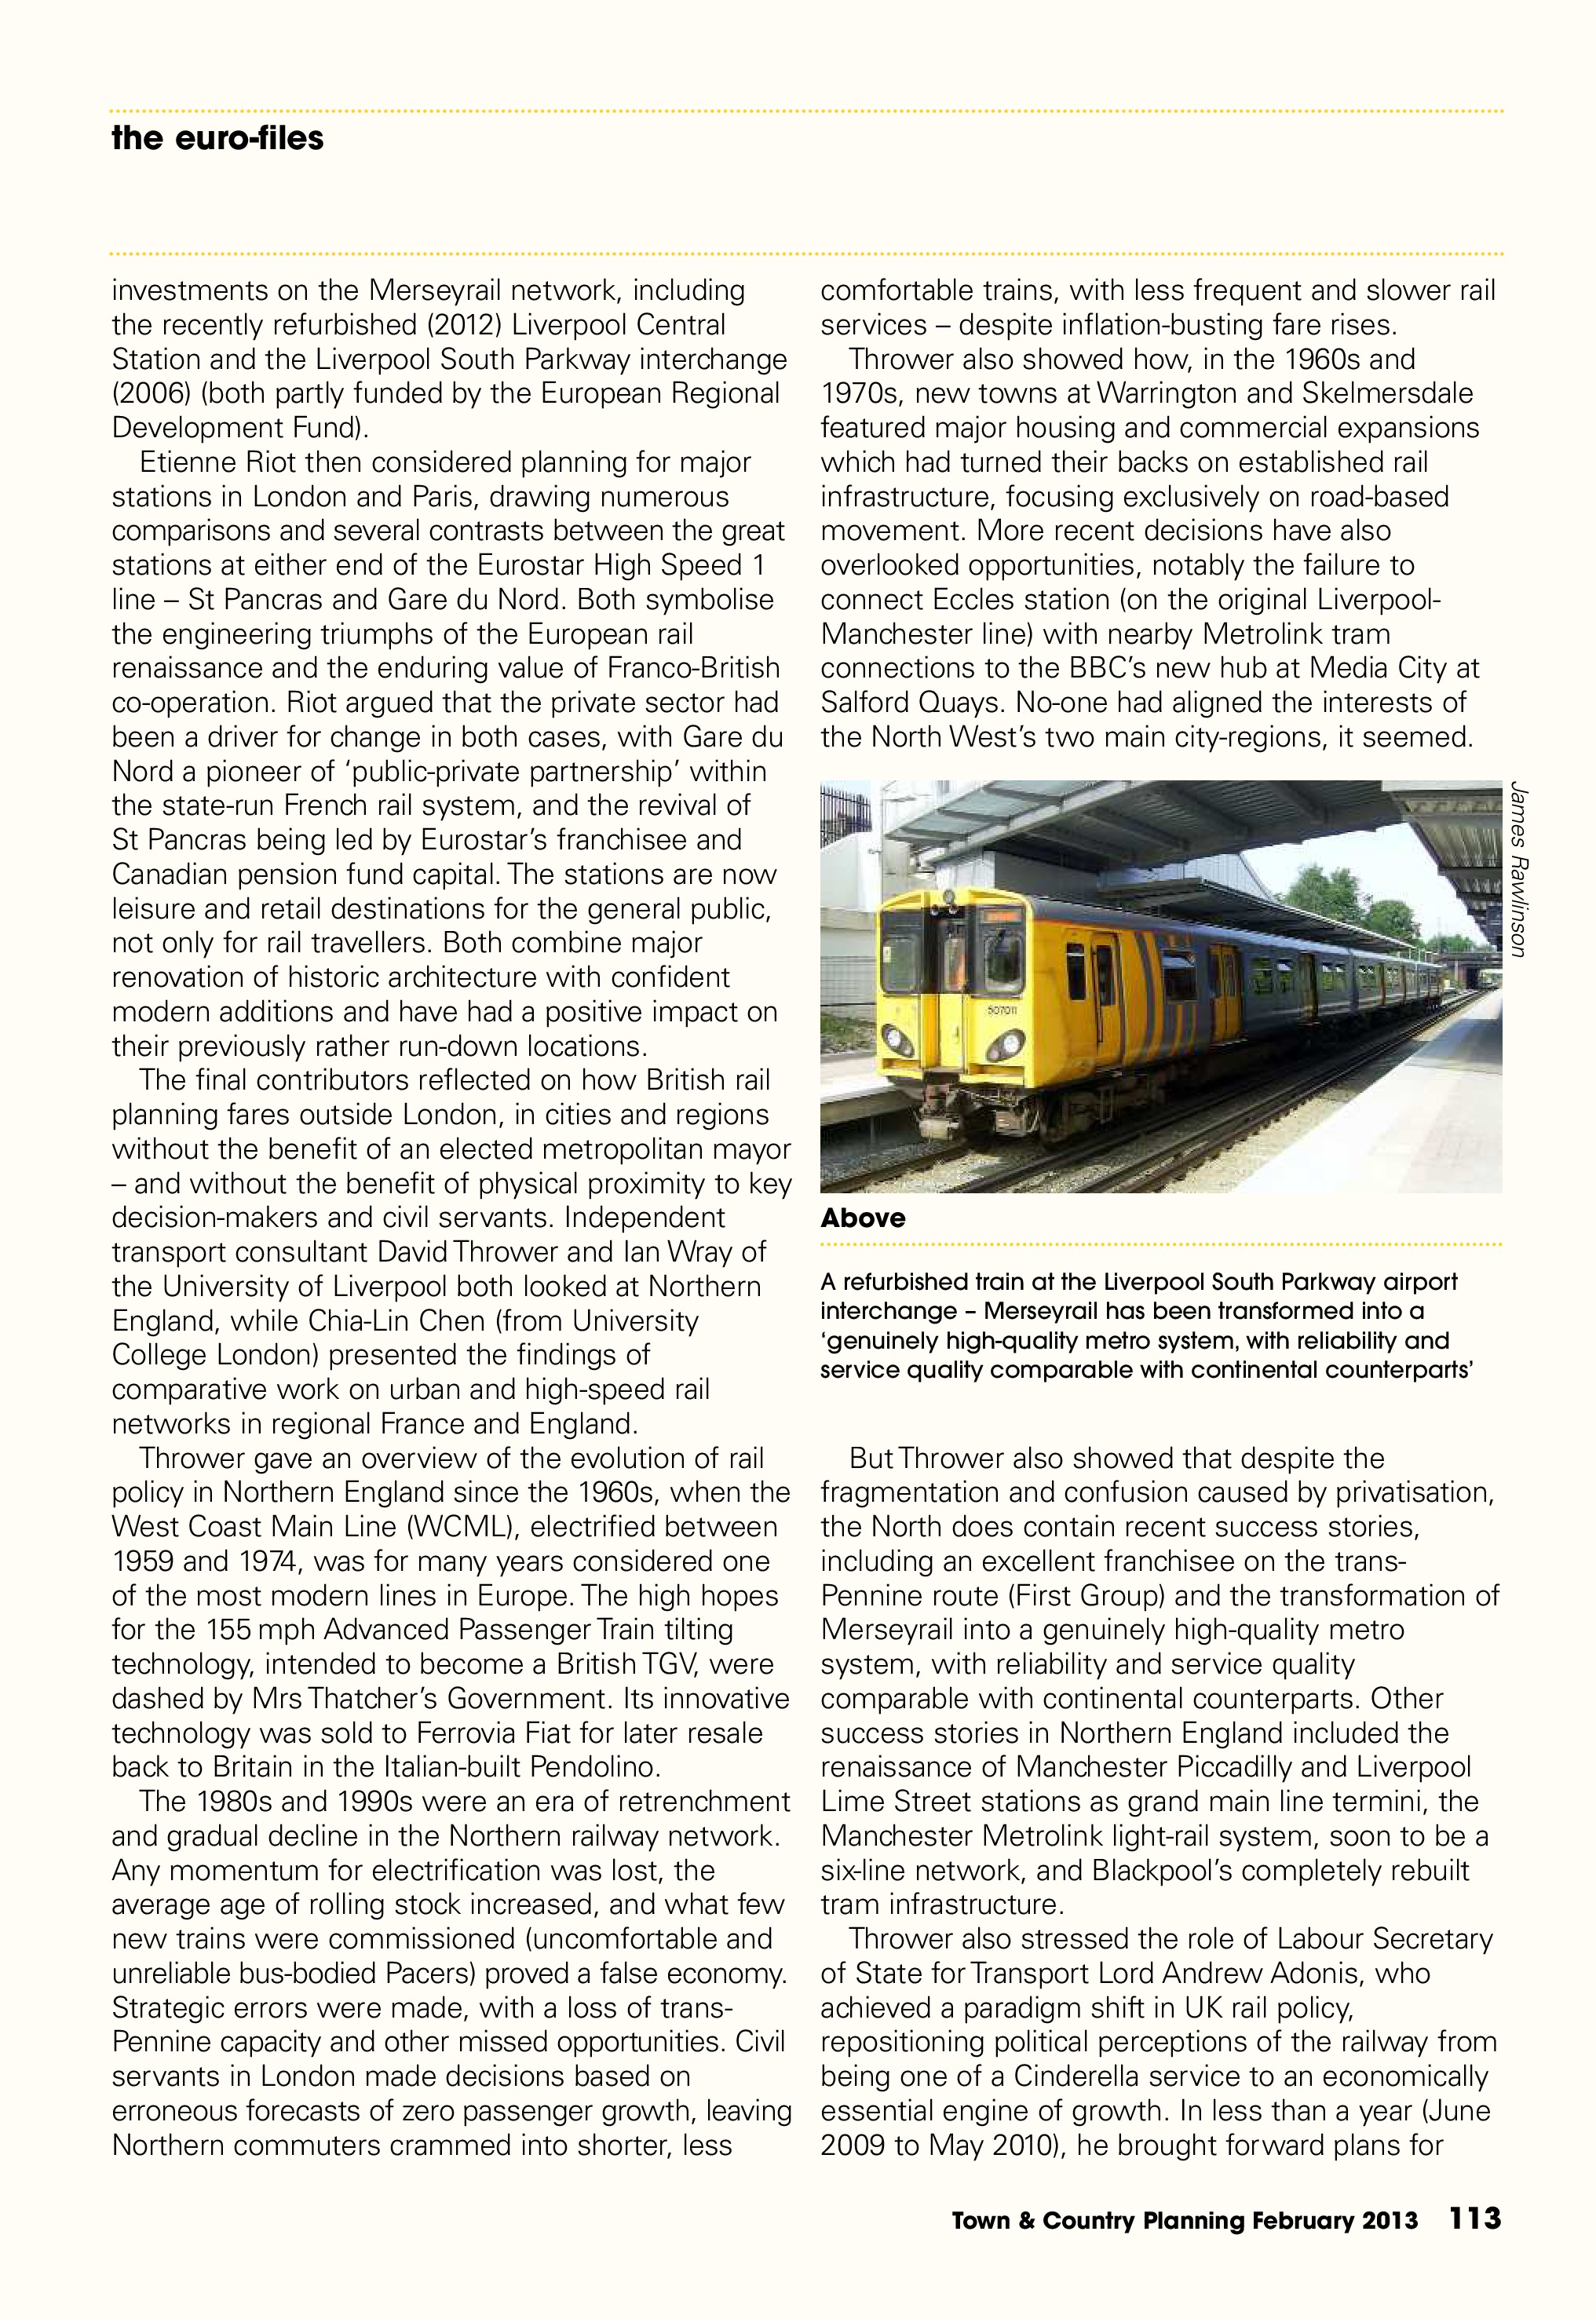 Town & Country Planning Association Journal, February 2013: 'Pulling the Right Levers' - 2nd Liverpool-Paris Rail Group Conference, p4/6